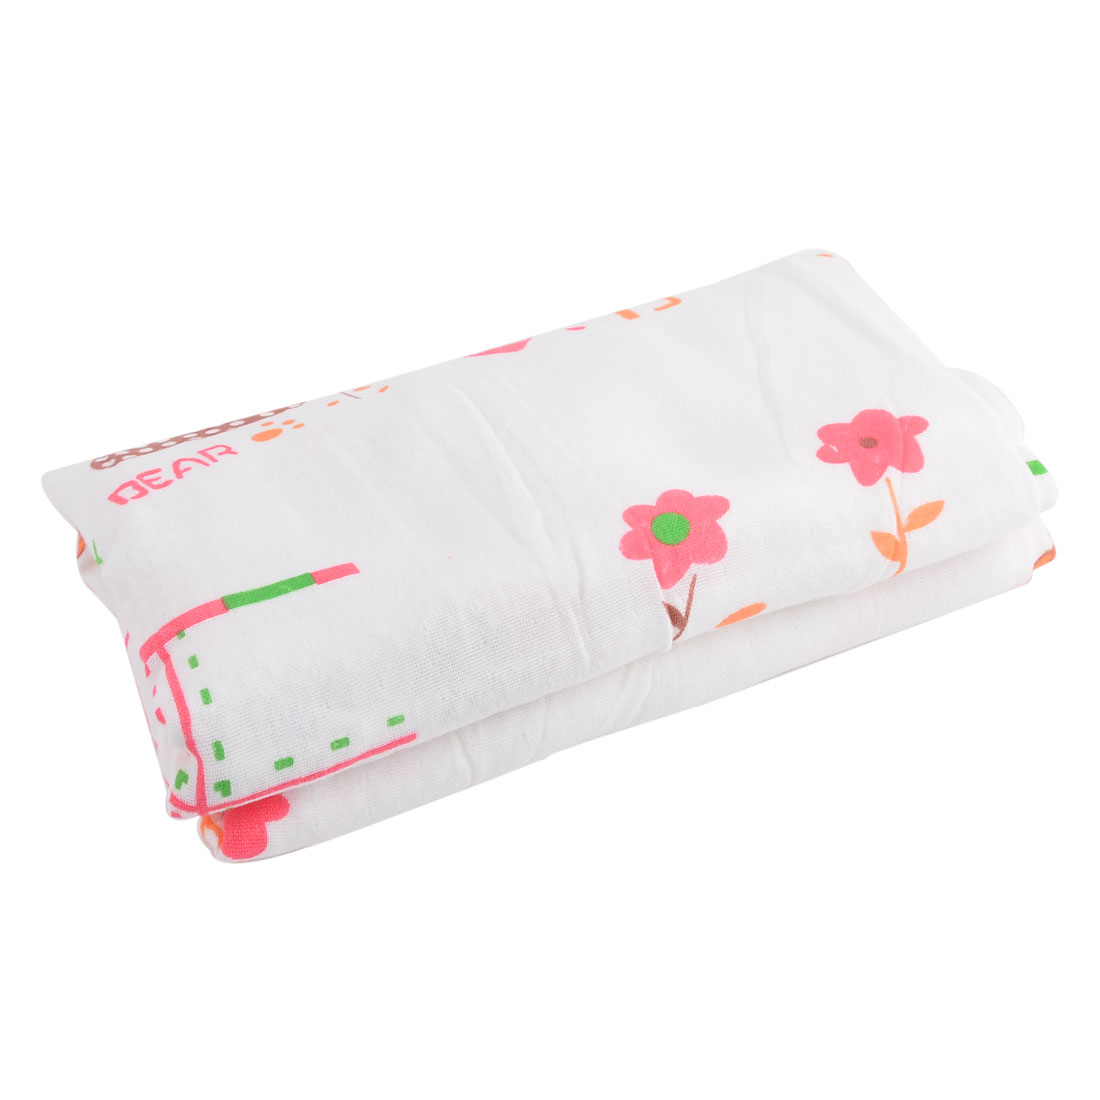 Maison-cotonnades-sechant-Rectangle-Douche-Serviette-bain-toilette-Animal